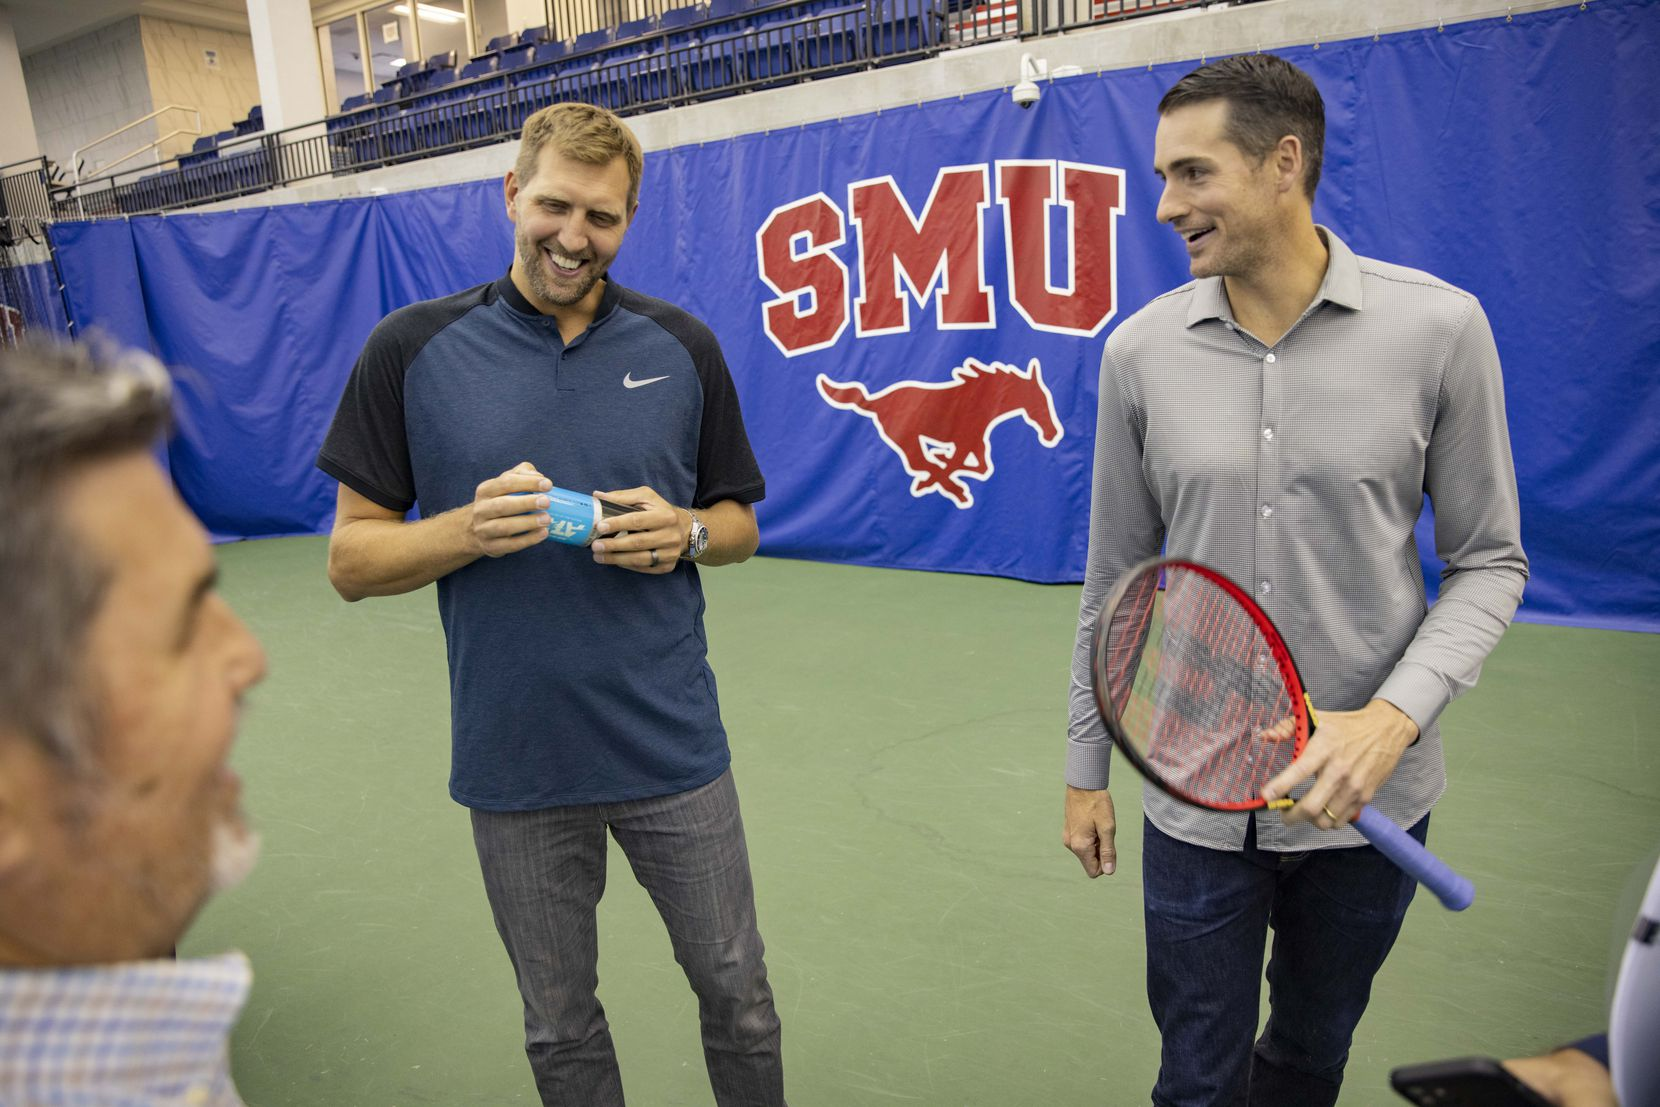 Dallas Mavericks star Dirk Nowitzki (left) and John Isner, 15-Time ATP Tour Champion, chat following a press conference to announce a new ATP tennis tour event coming to Dallas at the SMU Styslinger/Altec Tennis Complex on Wednesday, May 19, 2021, in Dallas.